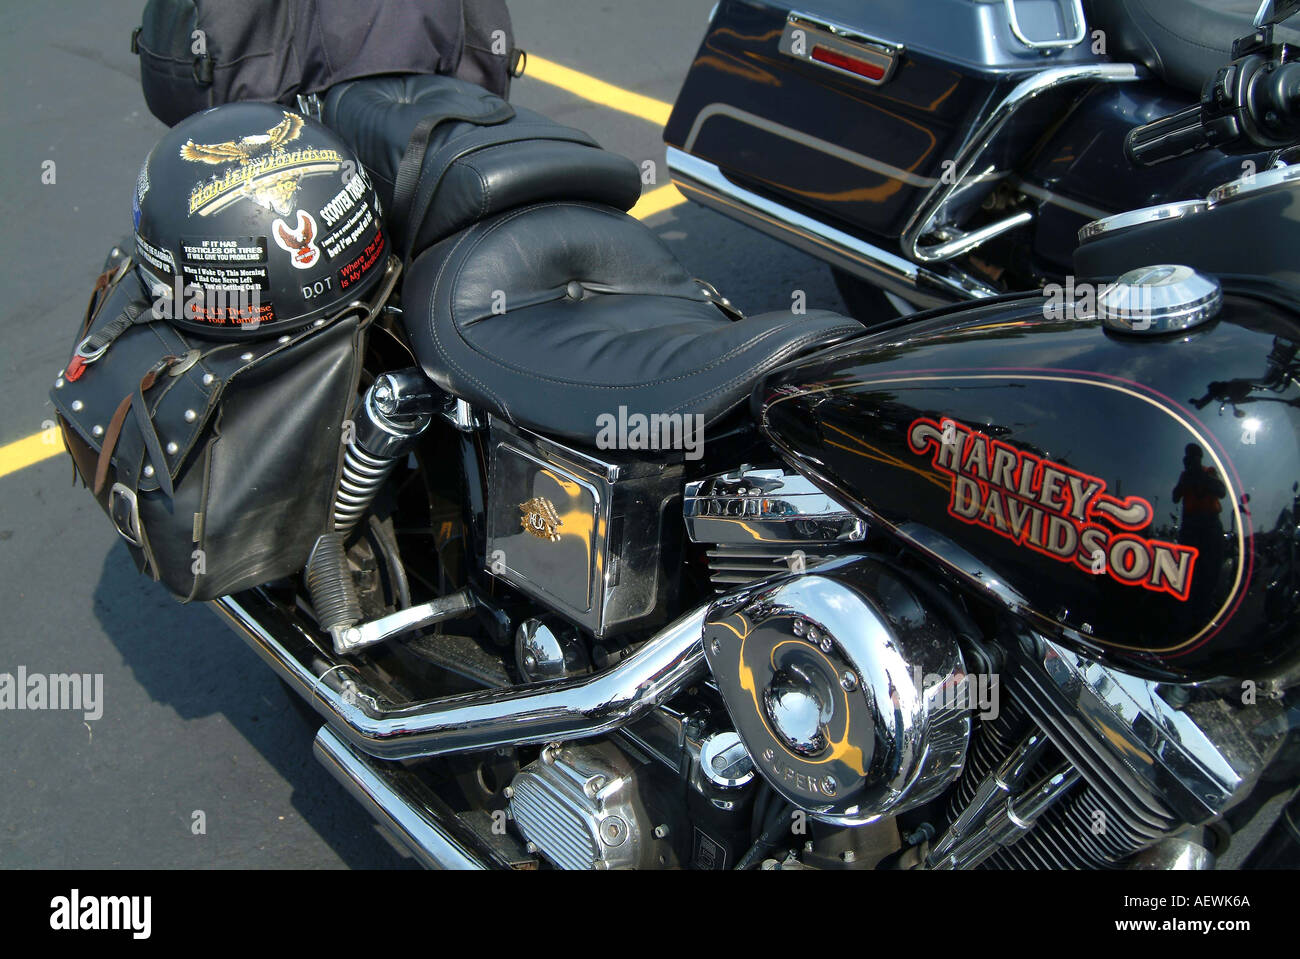 parked harley davidson motor cycle with strapped heavily sticker